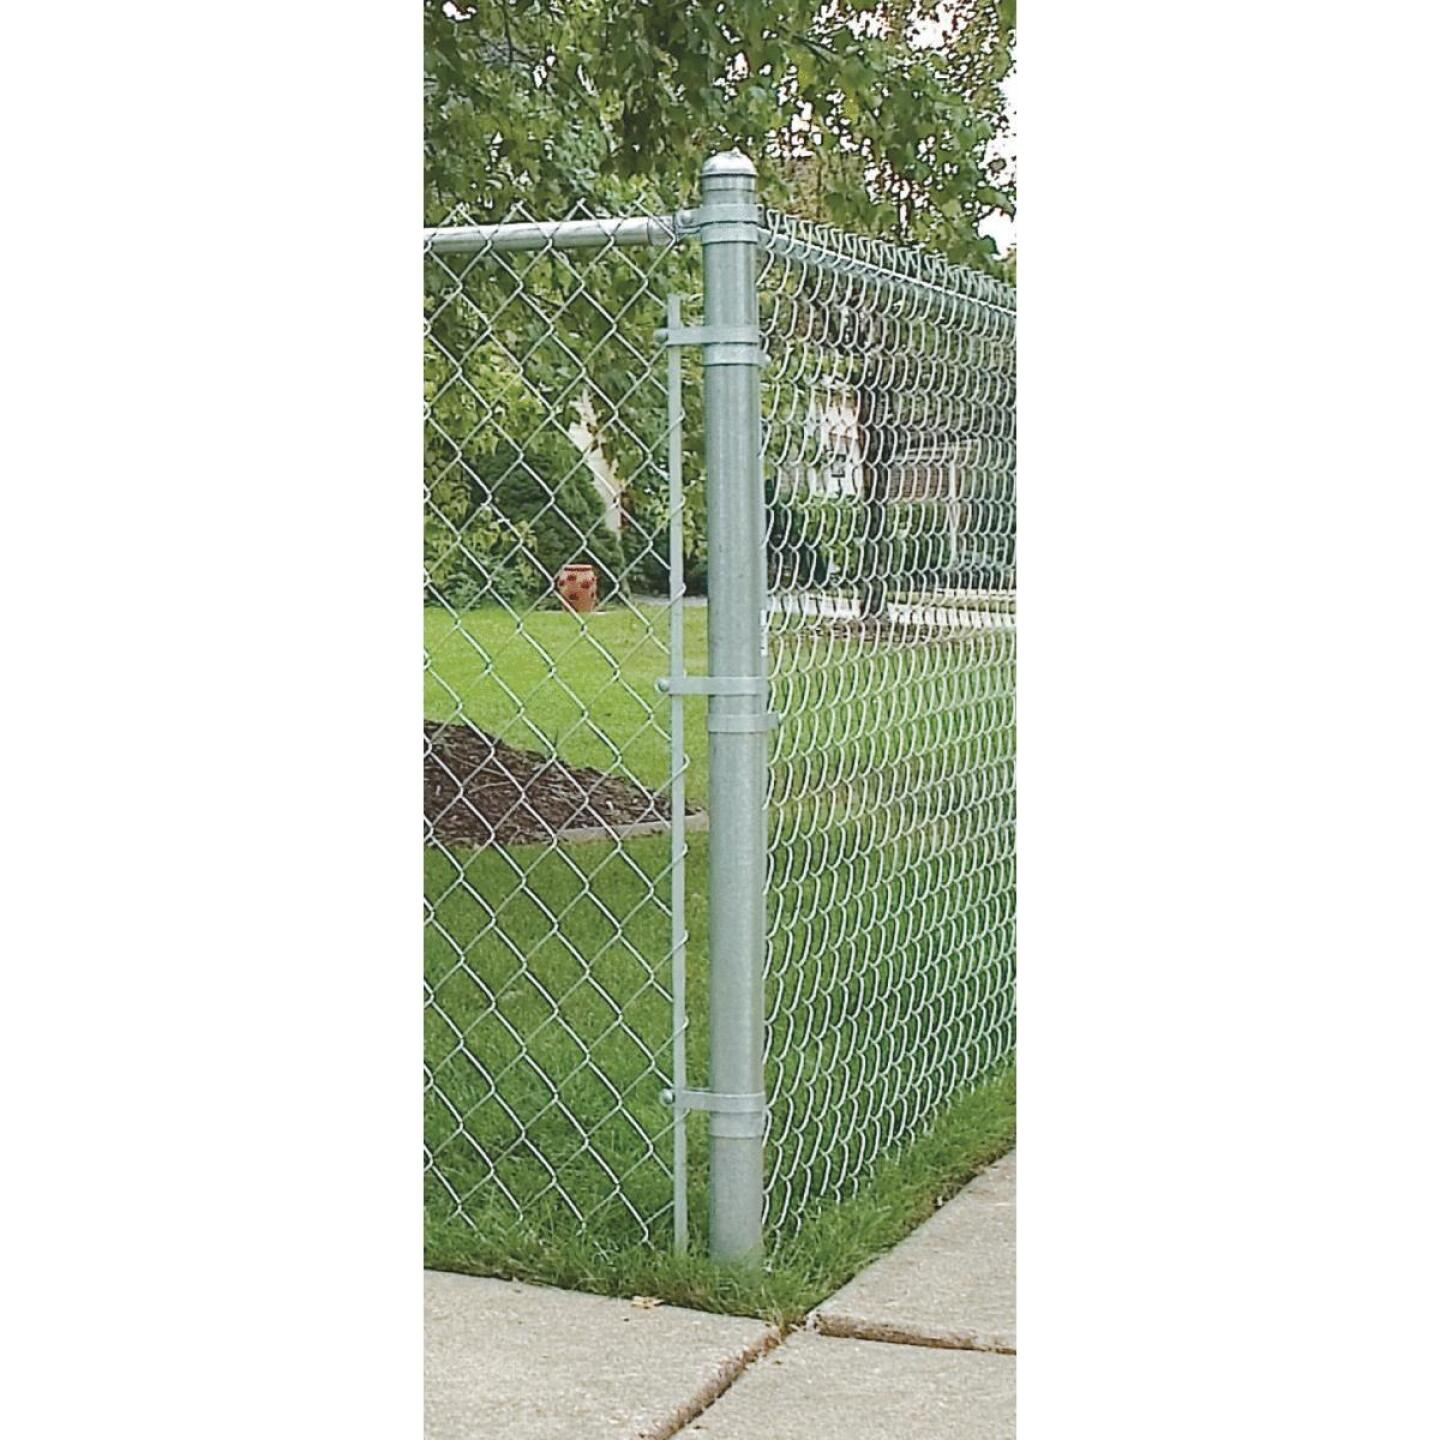 Midwest Air Tech Line Post 6 ft. L x 1-5/8 in. Dia 18 ga Post Image 1